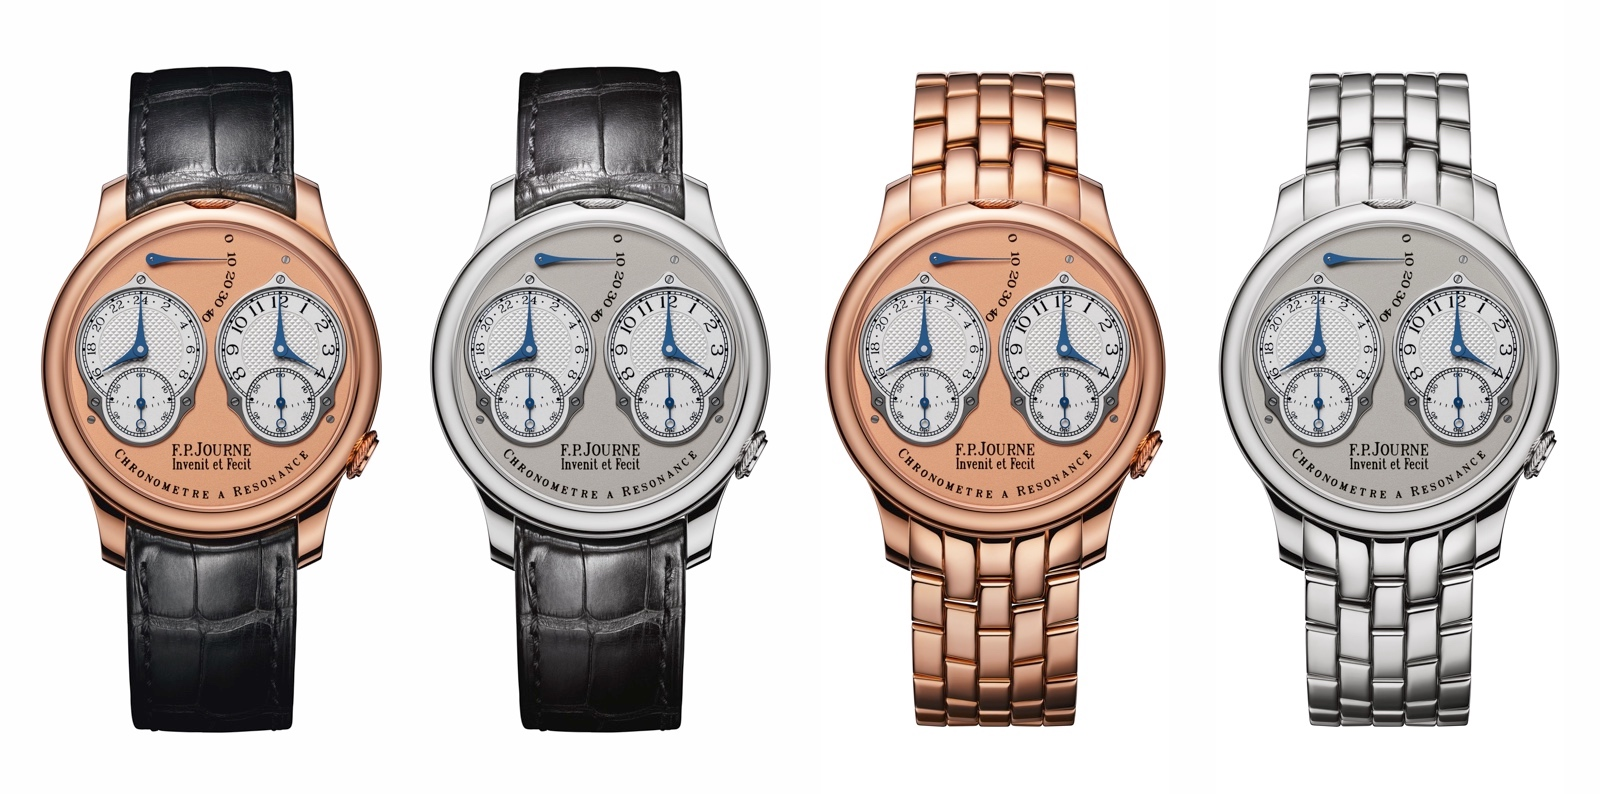 F.P. Journe Chronometre a Resonance 2019 - gama